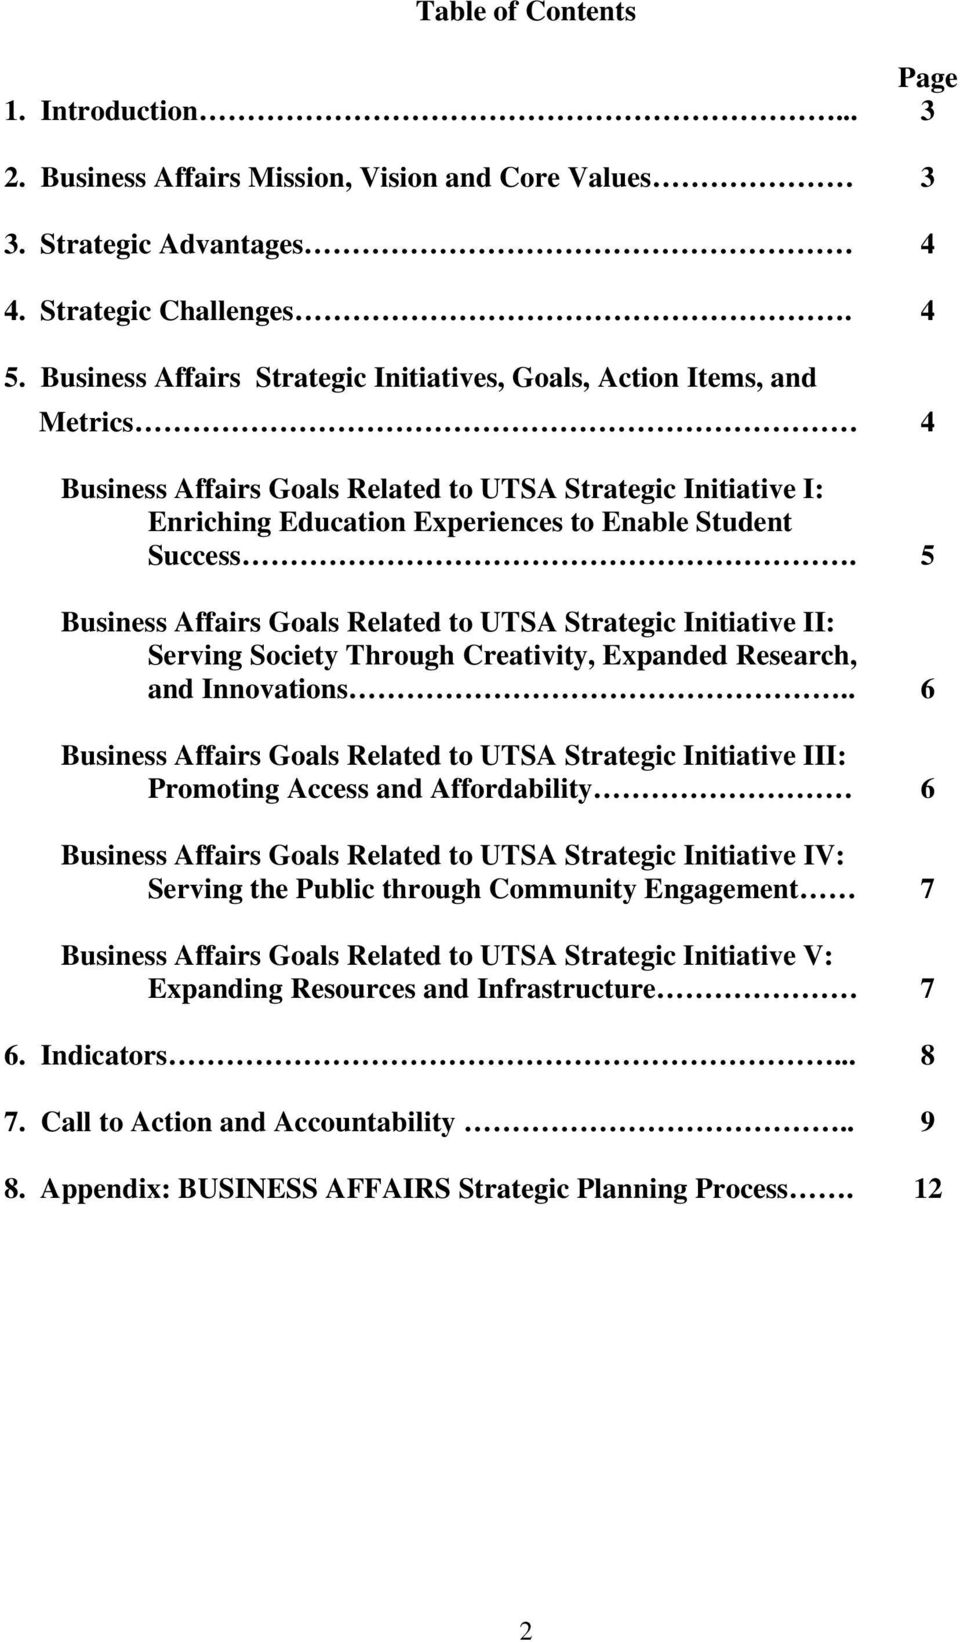 5 Business Affairs Goals Related to UTSA Strategic Initiative II: Serving Society Through Creativity, Expanded Research, and Innovations.